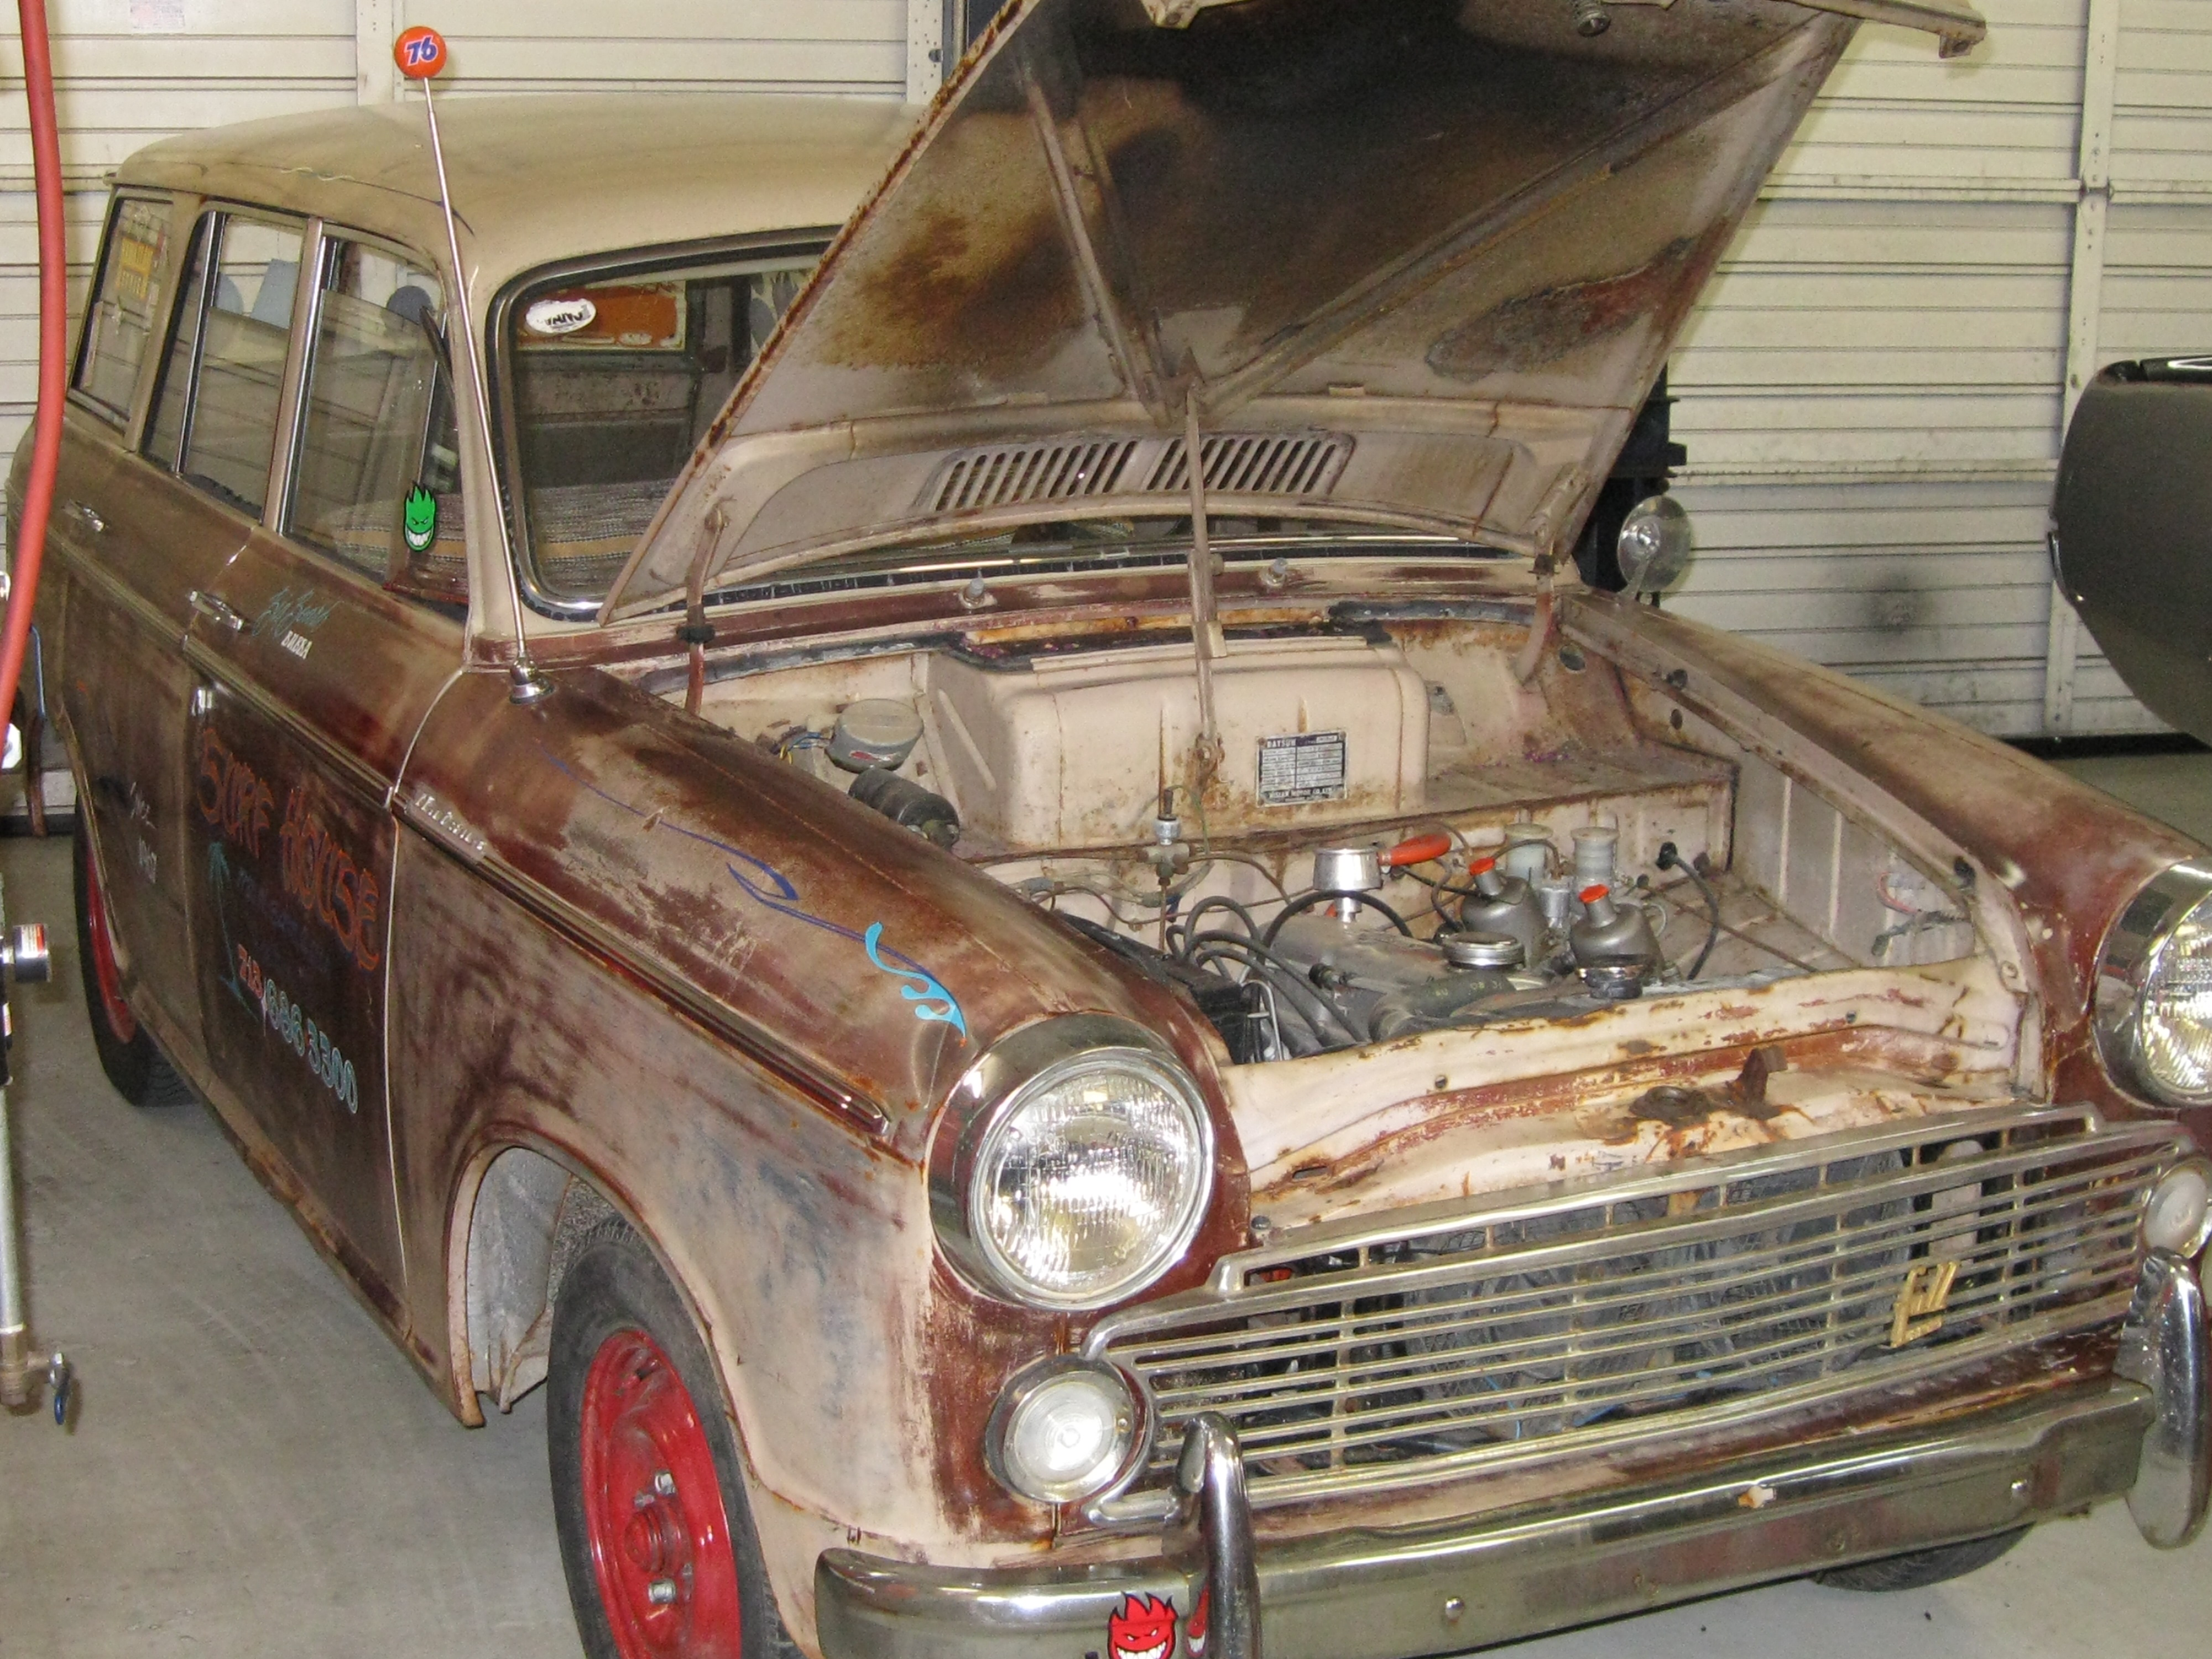 Fix my up chevy cars html in ysazyxu github com source code search engine